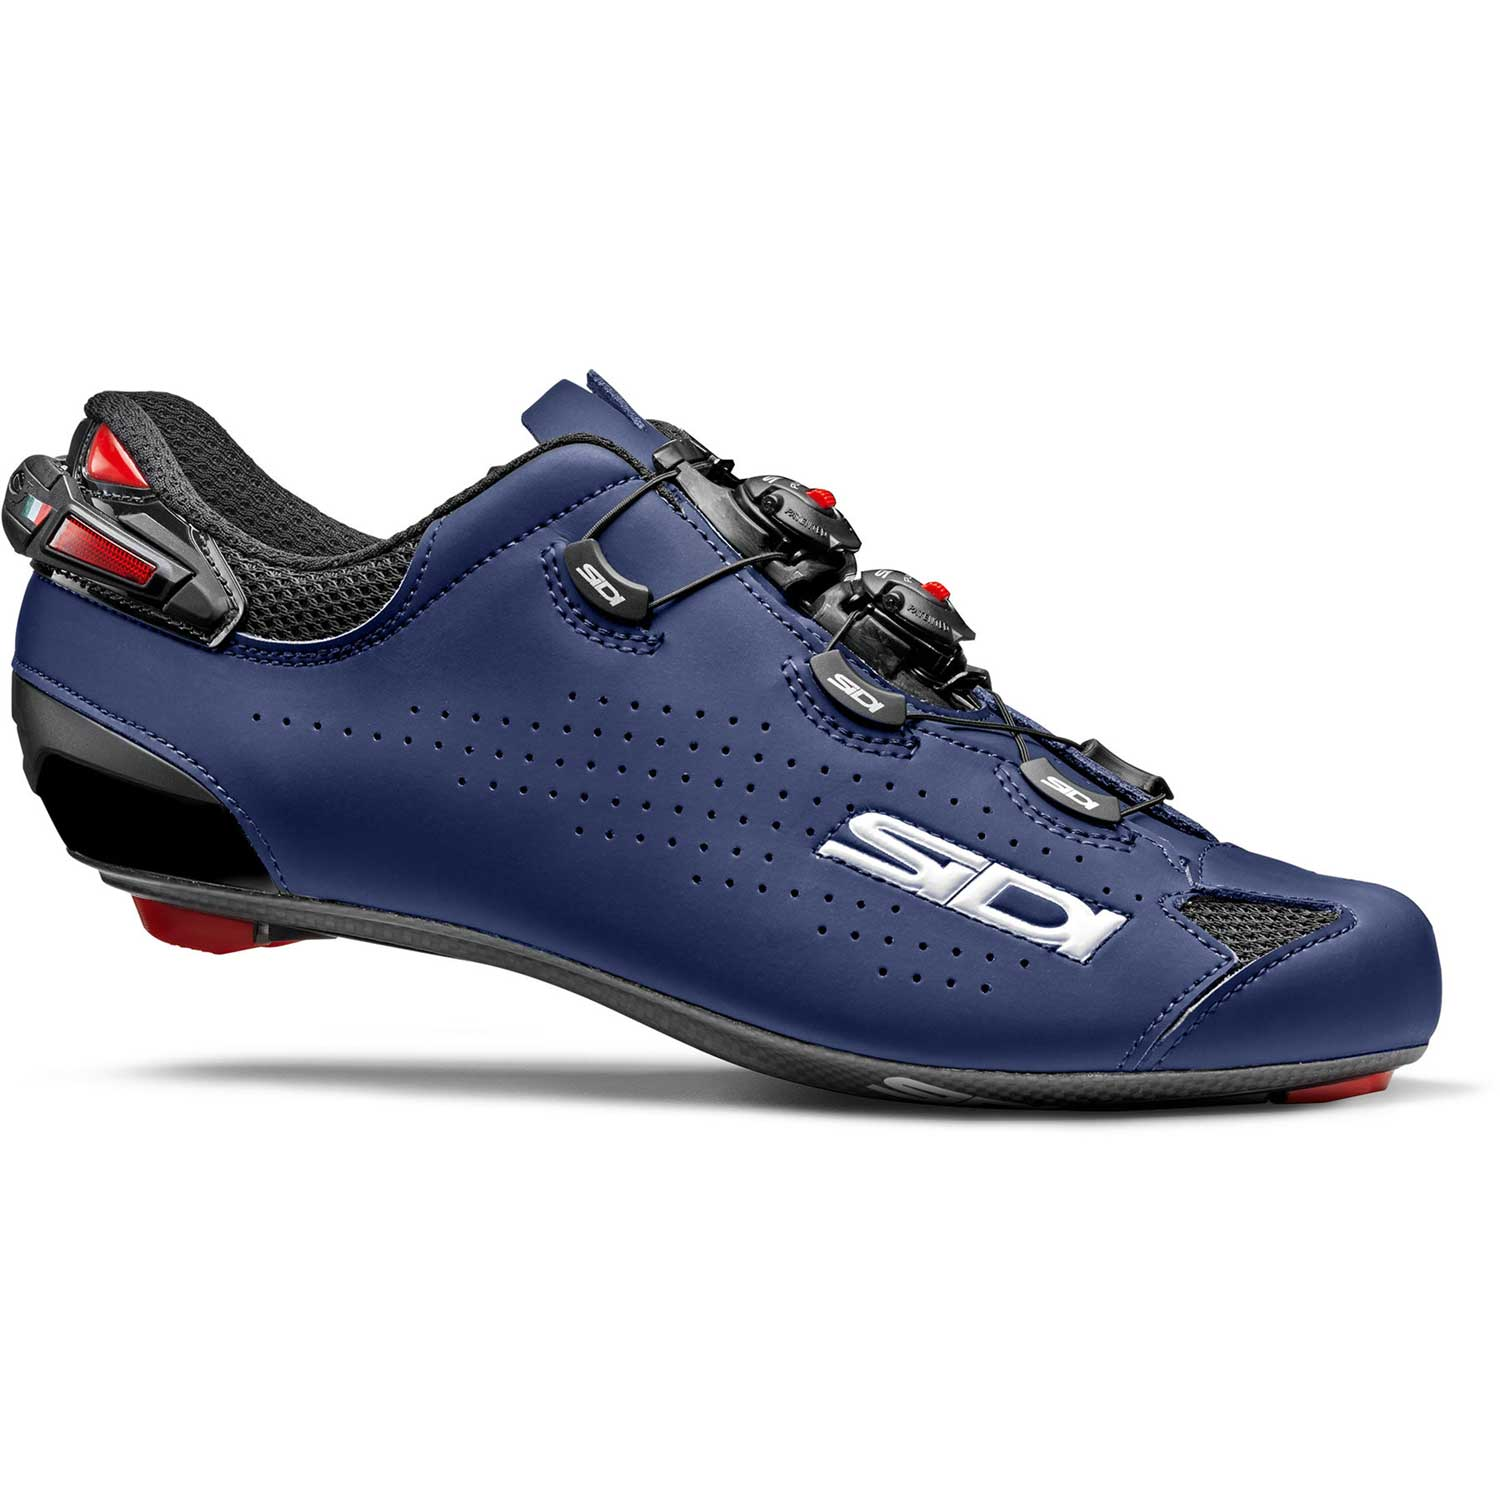 Sidi-Sidi Shot 2 Road Shoes-Matt Navy Blue/Black-38-SISHOT2NEBLOP38-saddleback-elite-performance-cycling